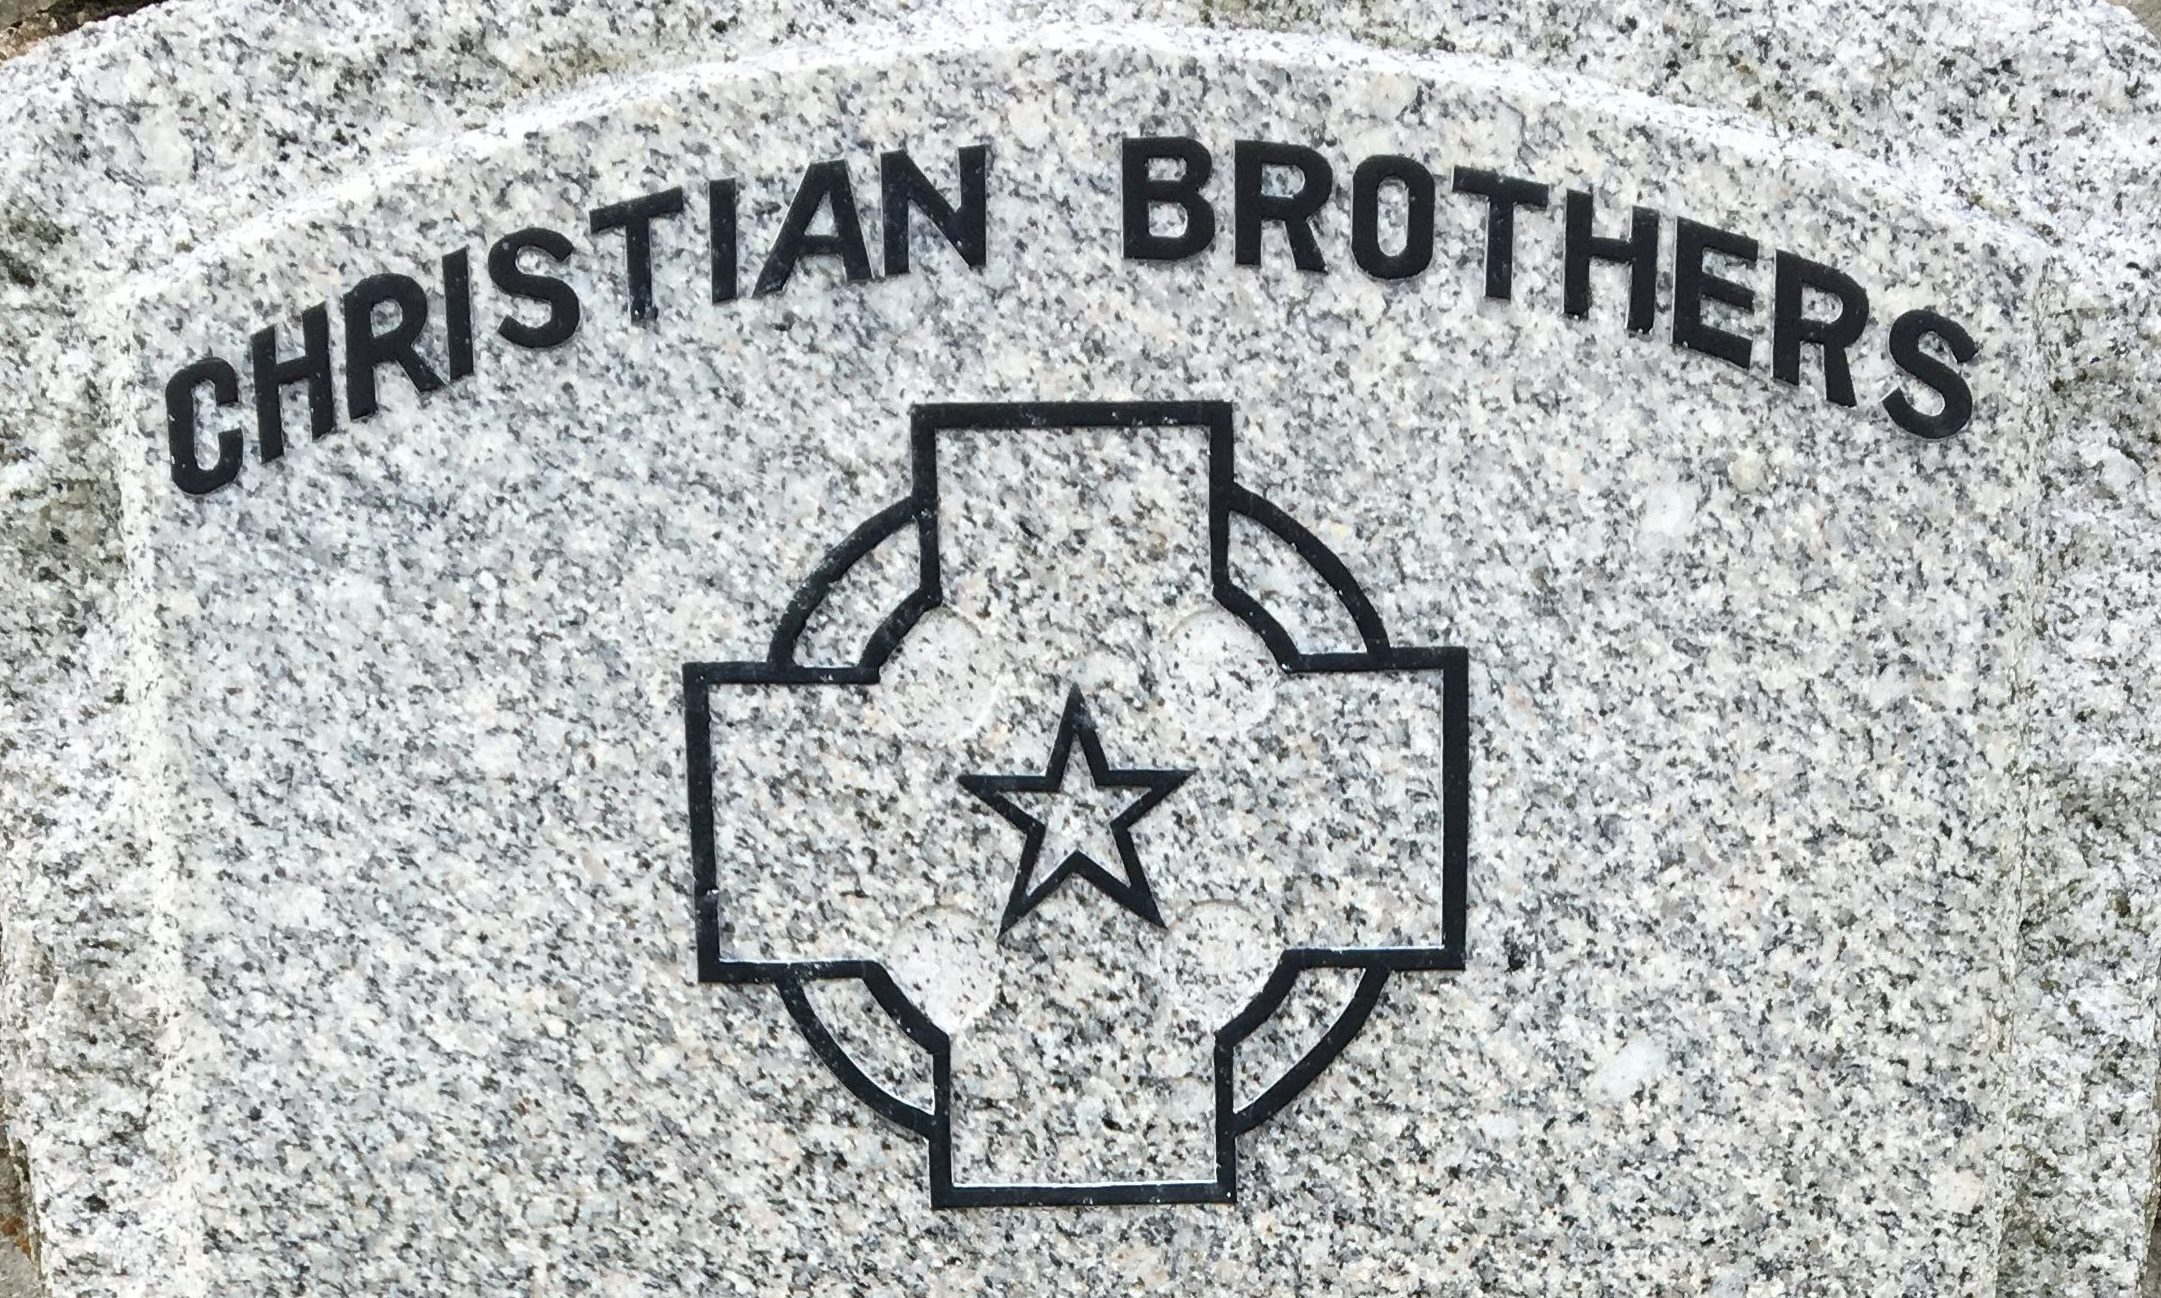 Christian Brothers grave in Falkland cemetery